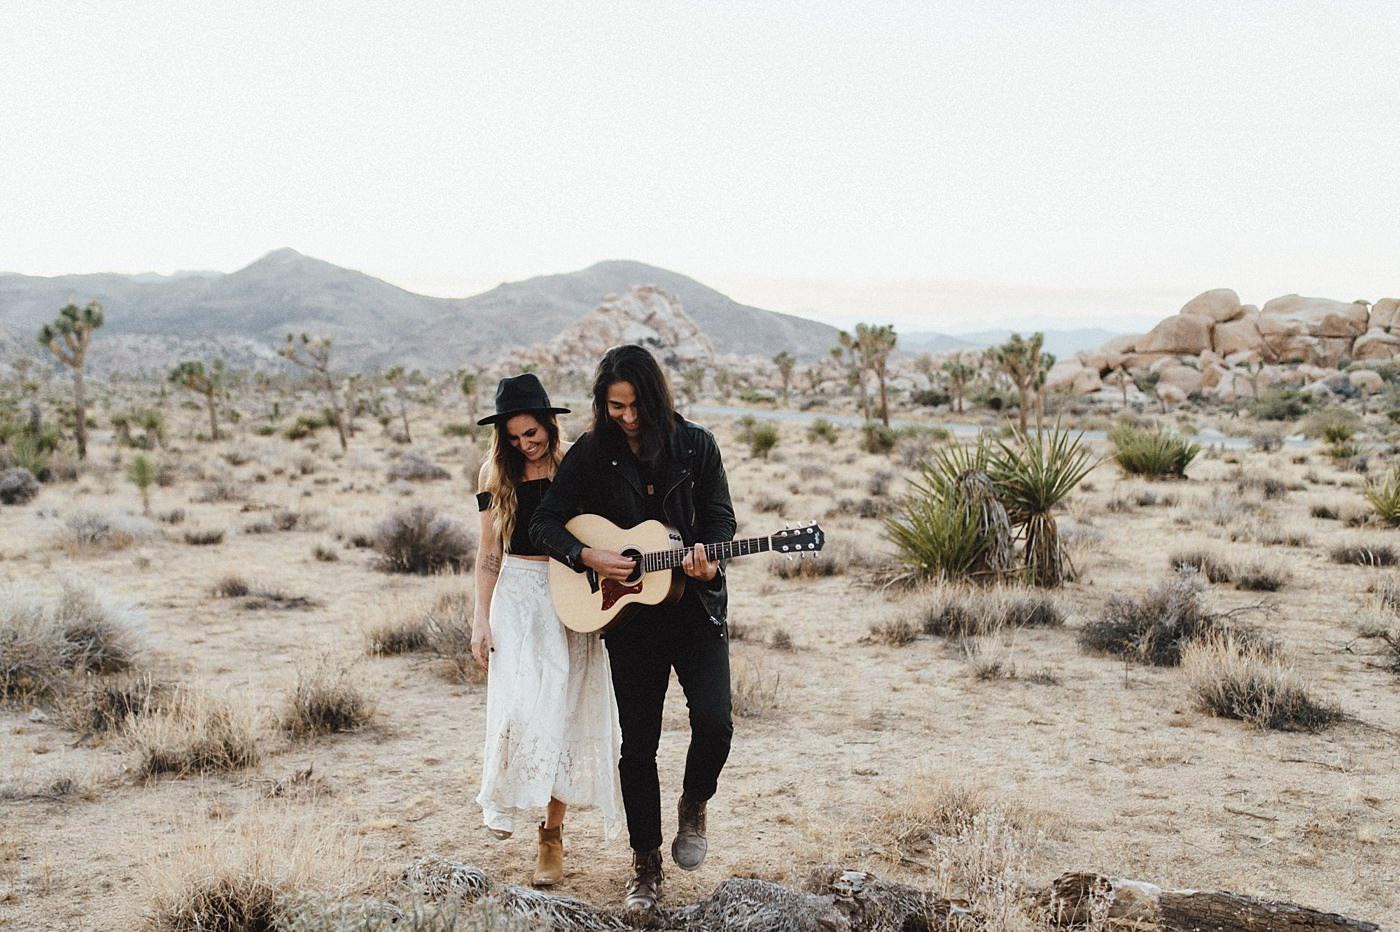 international-elopement-photographer_0198 Kinsey & Josh & Banjo Photographer in Joshuatreeinternational elopement photographer 0198